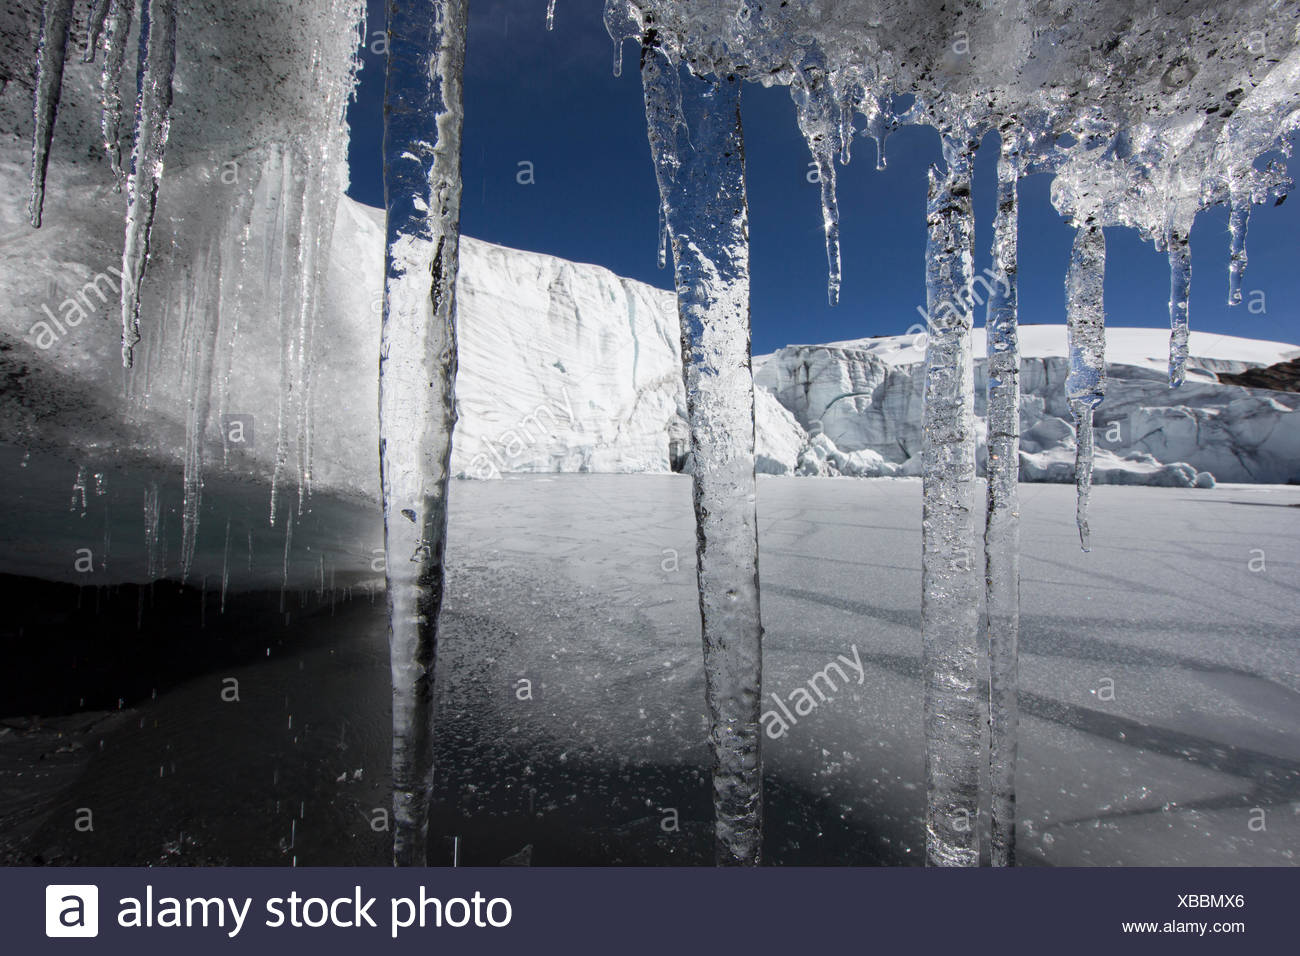 Glacier cave with icicles, Pastoruri Glacier 5200m above sea level, Cordillera Blanca, Andes, Peru - Stock Image